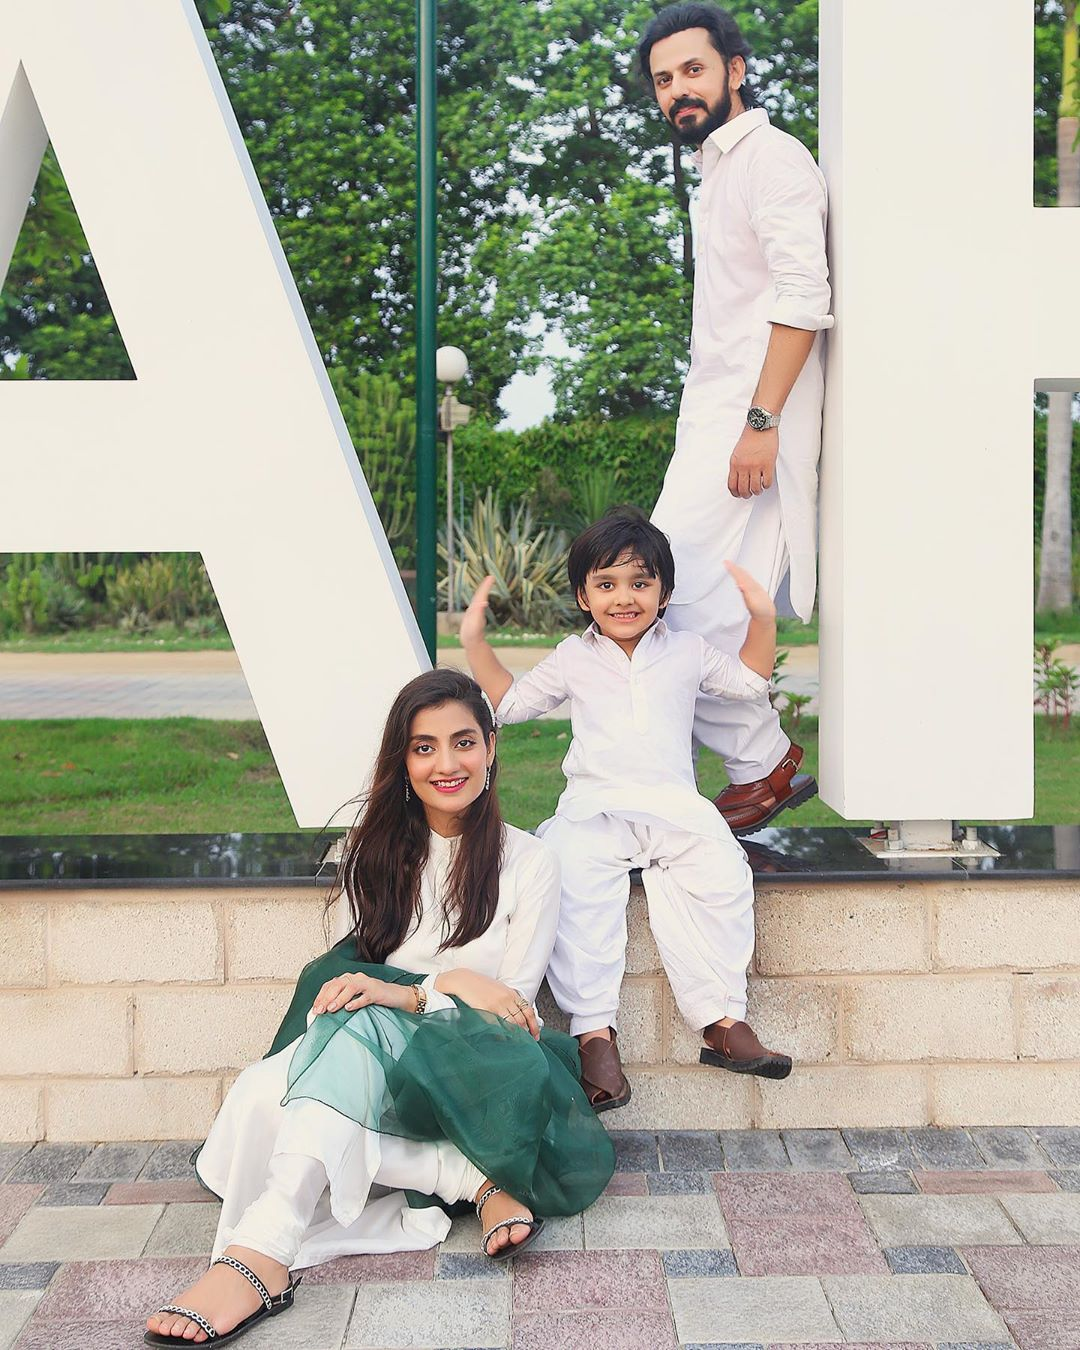 Bilal and Uroosa Qureshi Independence Day Pictures with Their Cute Son